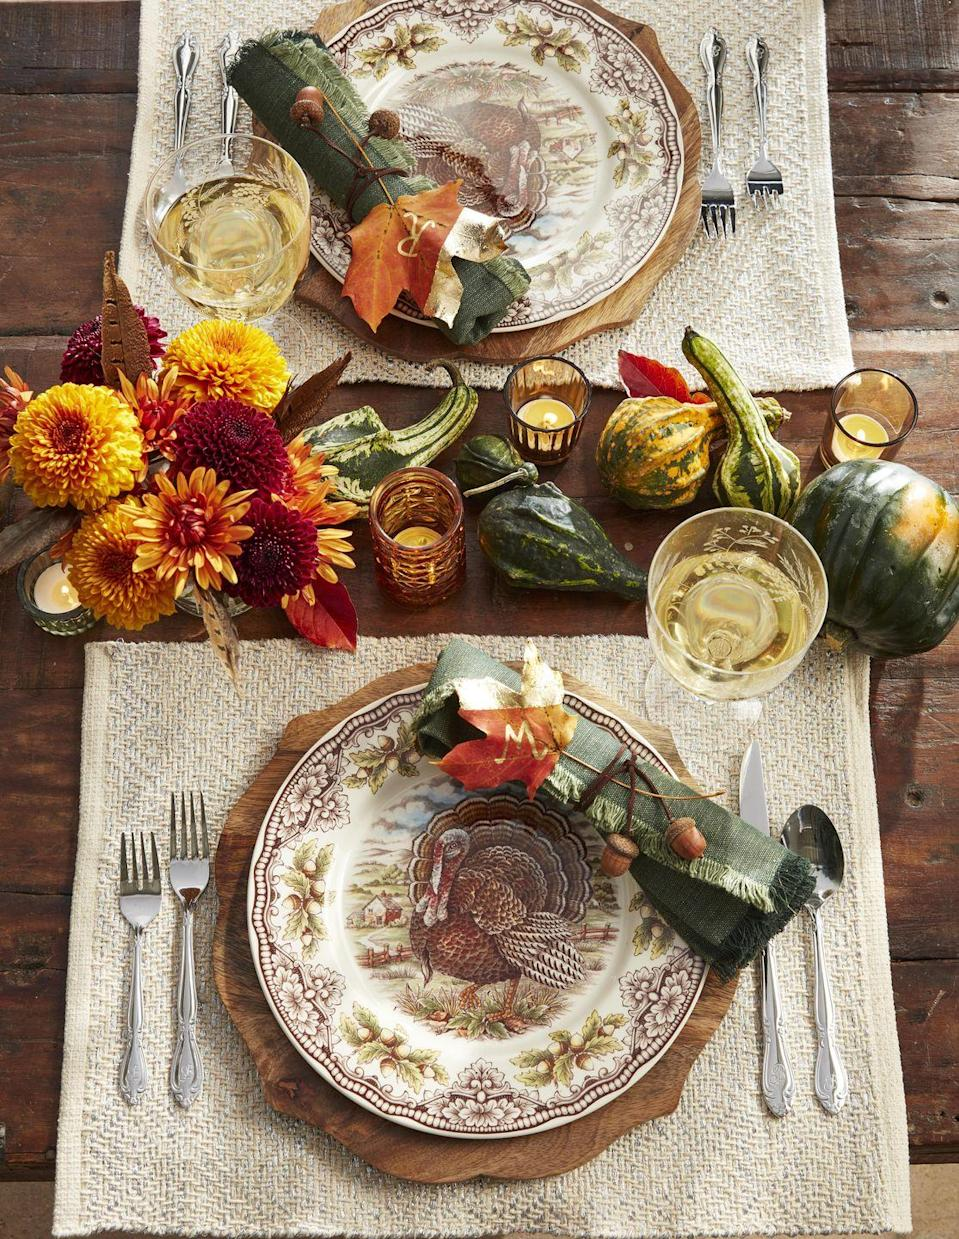 """<p>Nature is the theme of this classically fall hued table. Hot glue acorns to lengths of brown waxed twine and use to tie up rolled napkins. Apply gold leaf to a portion of a preserved maple leaf and use a gold paint pen to mark with guest's initials.</p><p><a class=""""link rapid-noclick-resp"""" href=""""https://www.amazon.com/Eight-Owls-Linen-Napkins-French/dp/B07Q6BXGJ9/ref=sr_1_10?tag=syn-yahoo-20&ascsubtag=%5Bartid%7C10050.g.1371%5Bsrc%7Cyahoo-us"""" rel=""""nofollow noopener"""" target=""""_blank"""" data-ylk=""""slk:SHOP NAPKINS"""">SHOP NAPKINS</a><br></p>"""